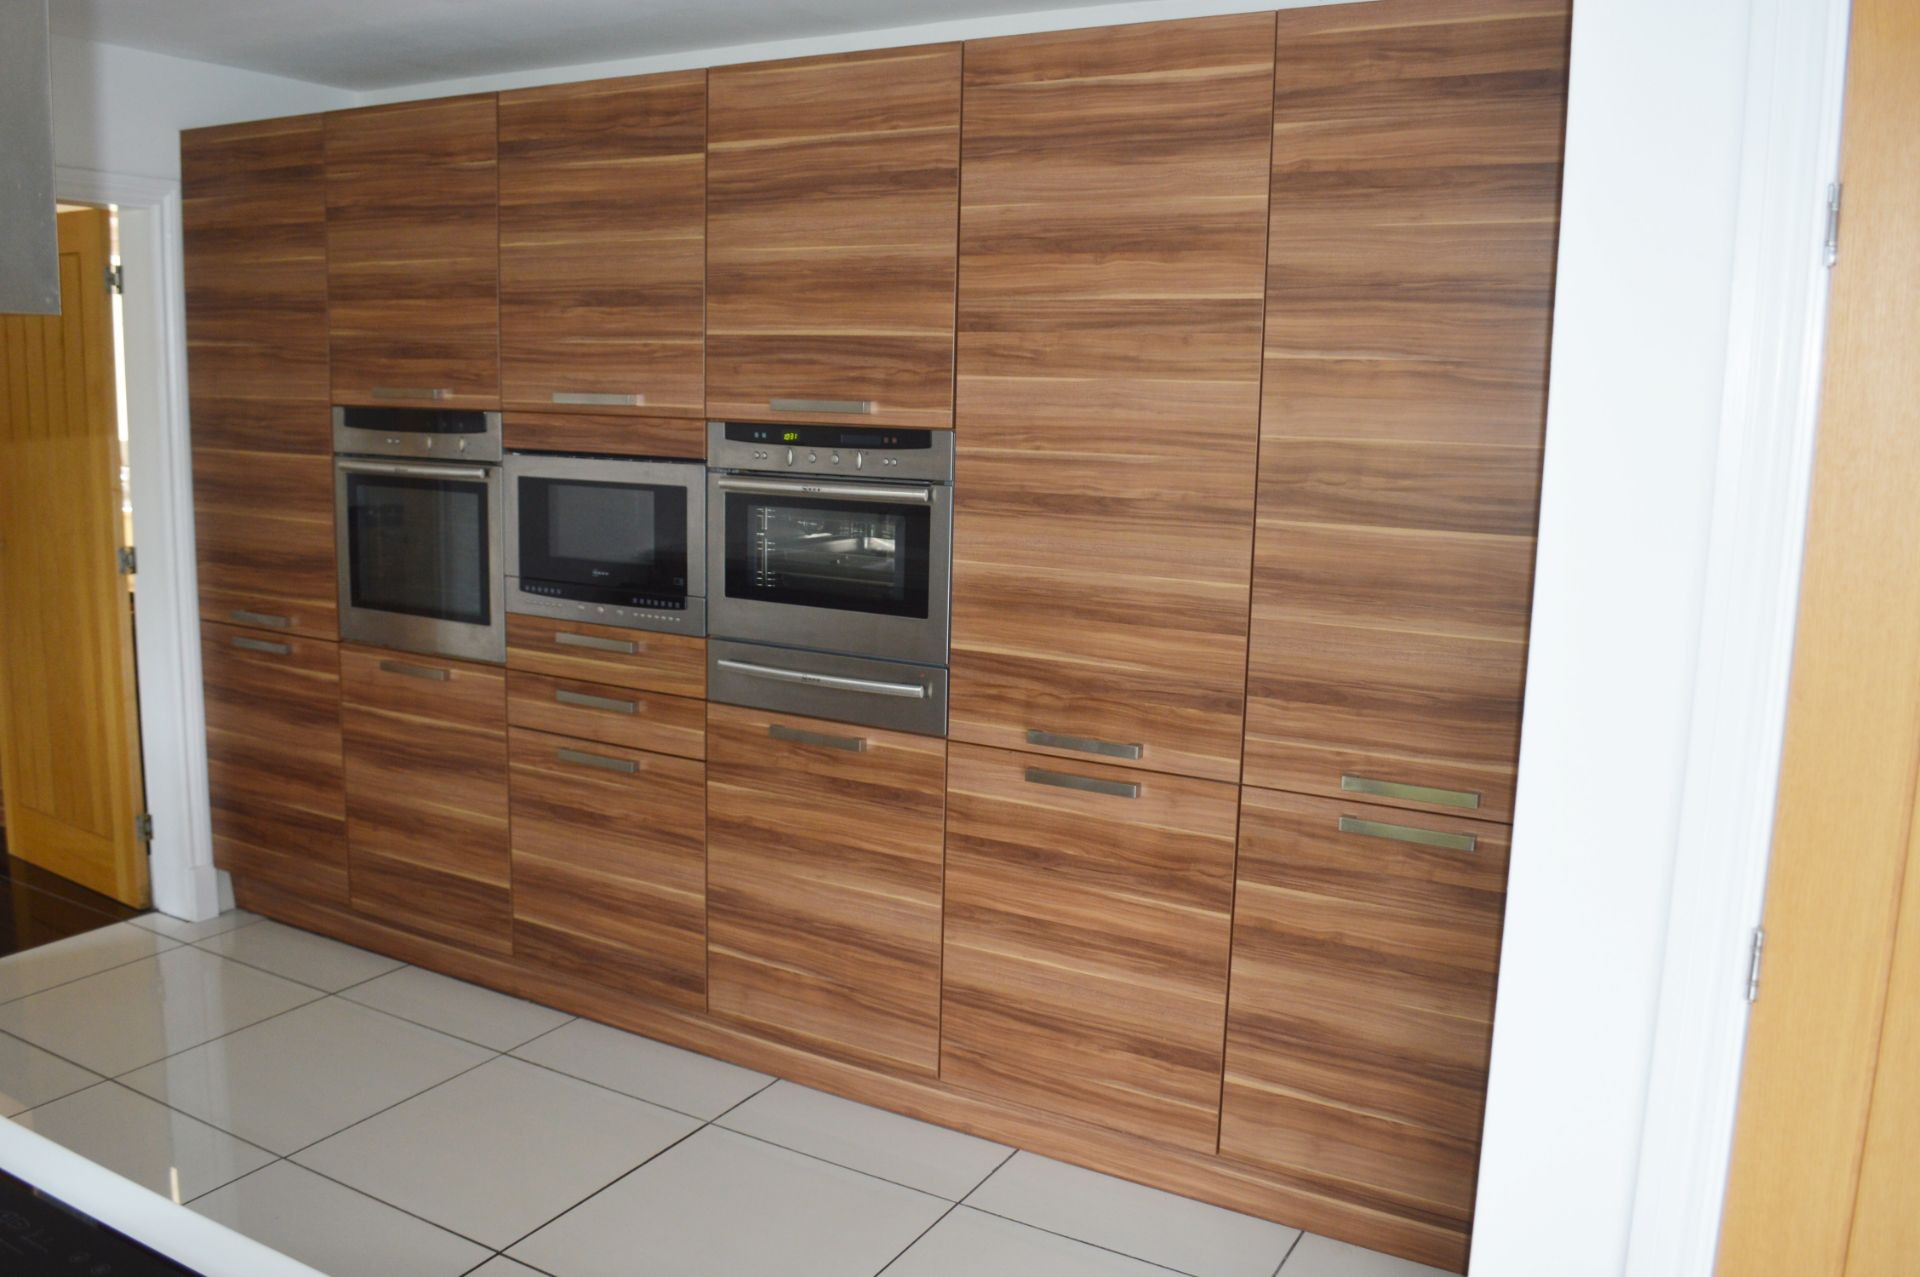 1 x Contemporary Bespoke Fitted Kitchen With Integrated Neff Branded Appliances, Quartz Worktops - Image 2 of 52